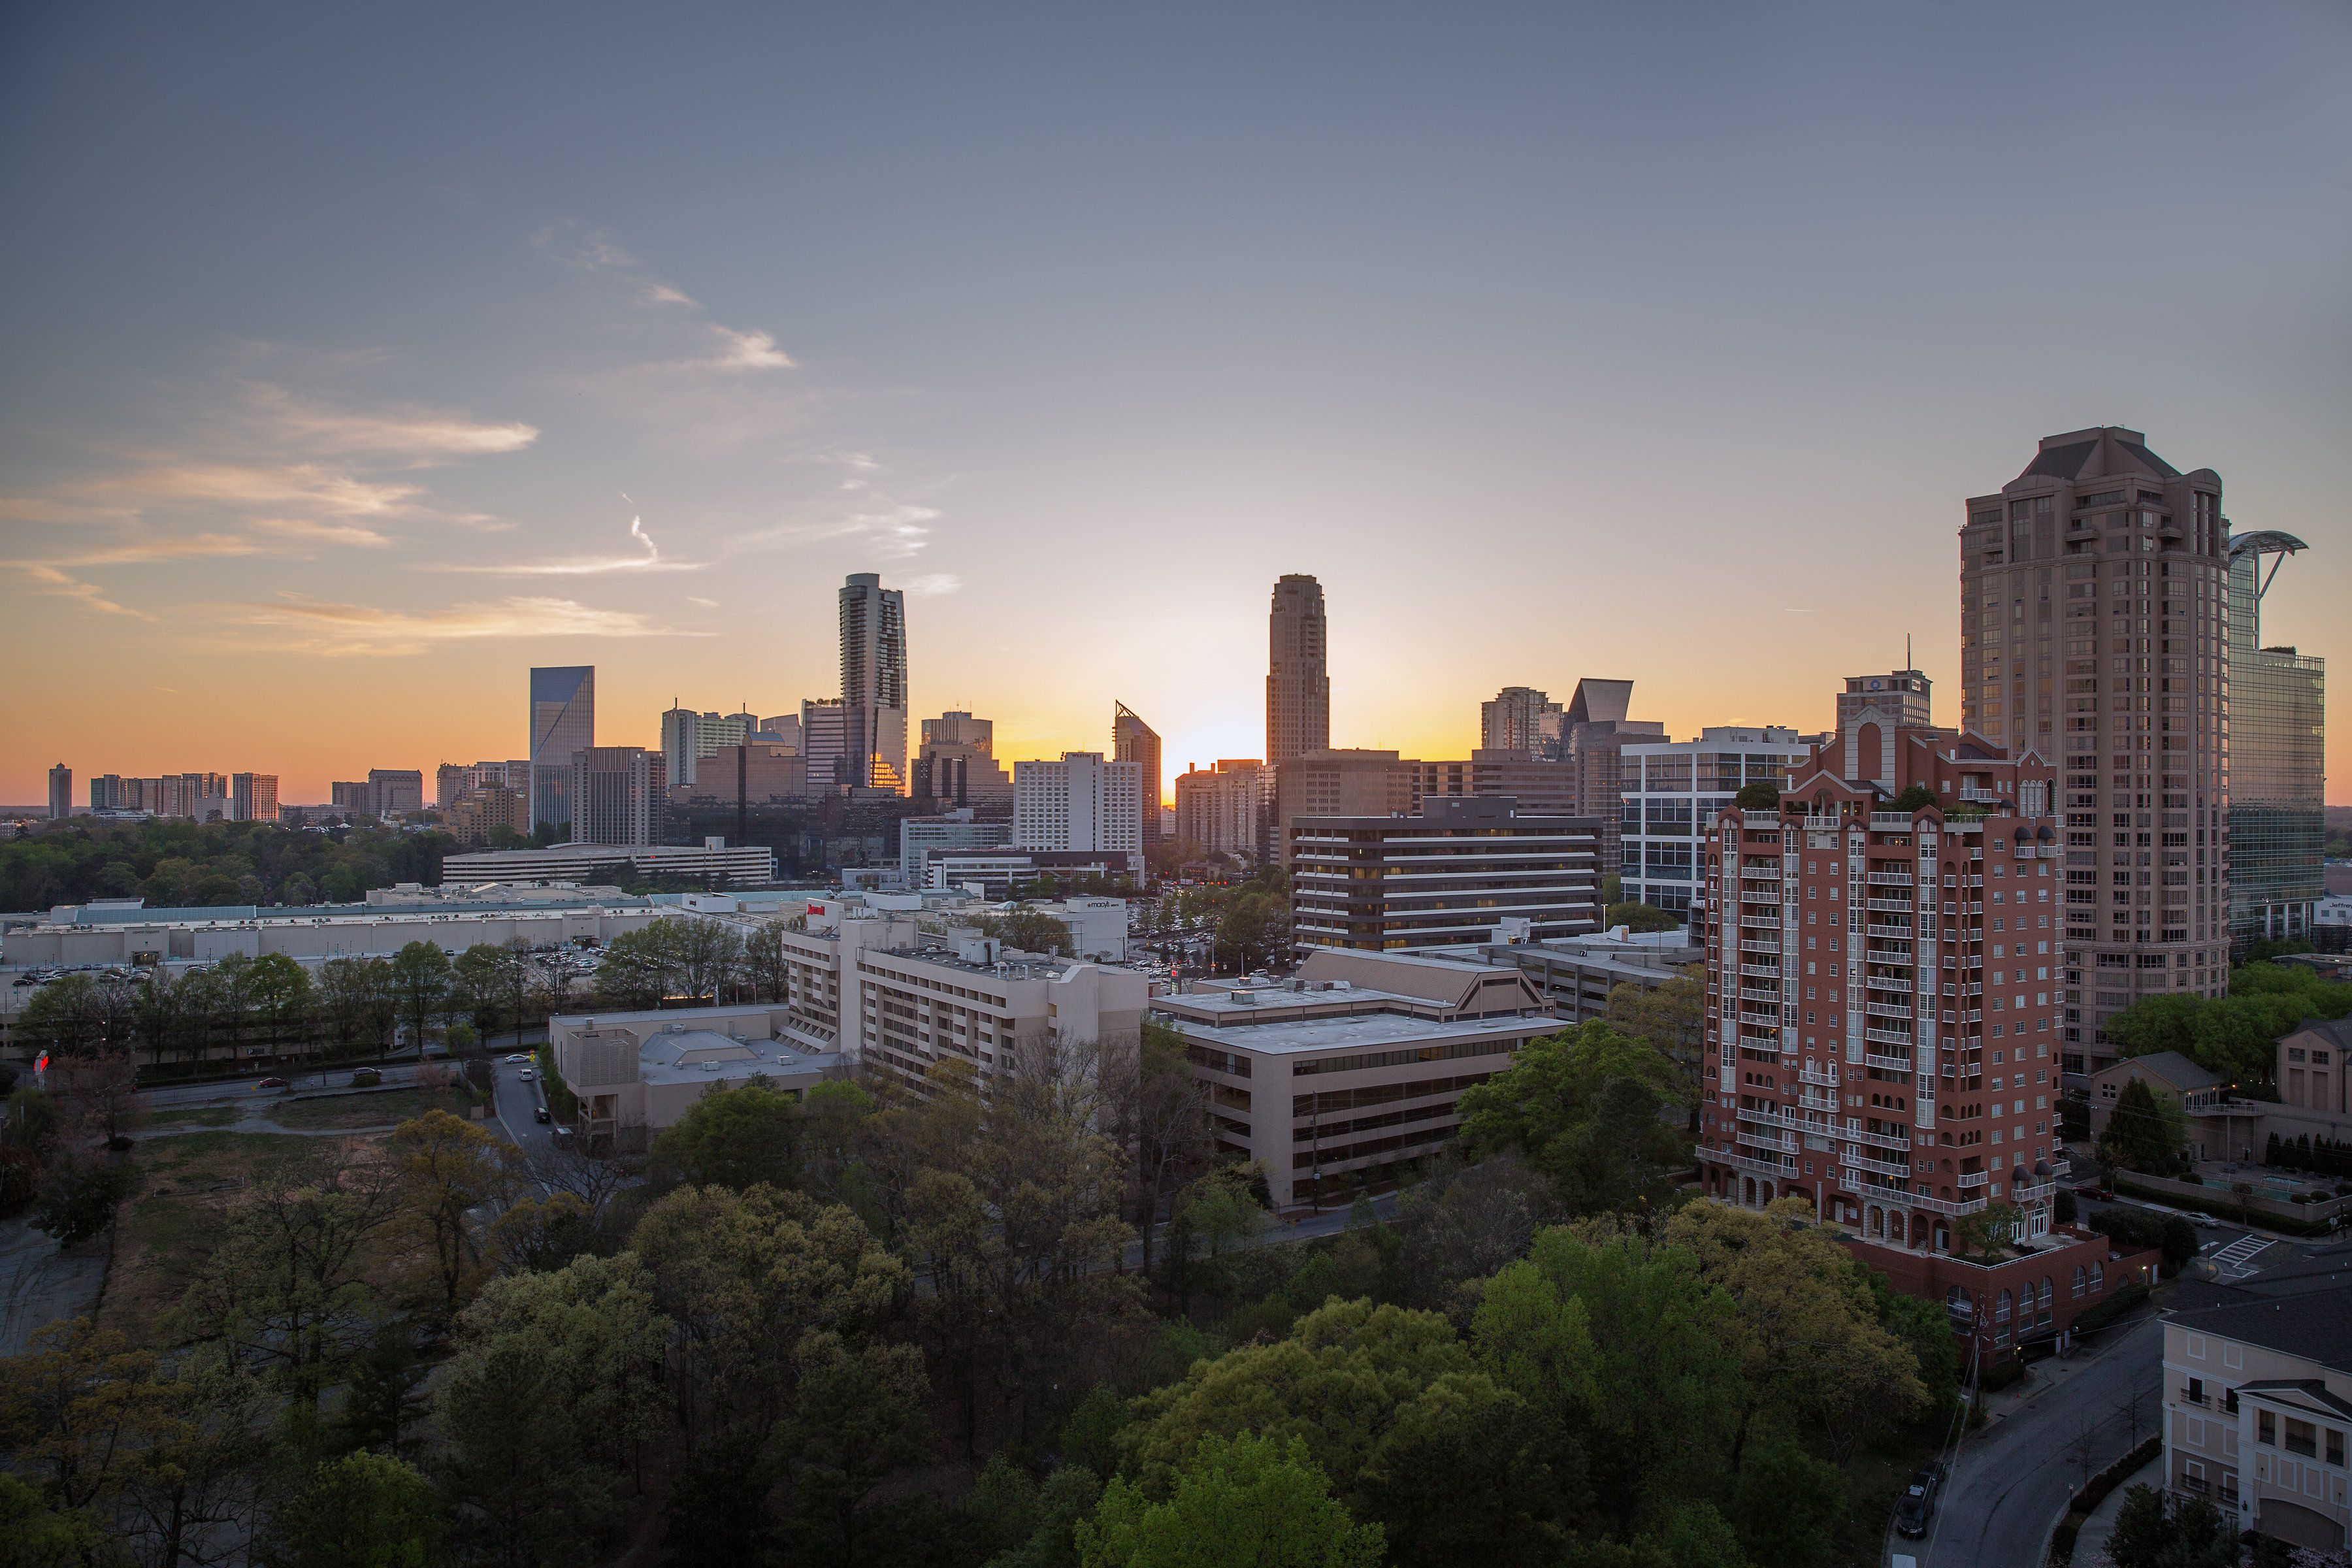 The sunsets against the Buckhead skyline are a sight to behold.